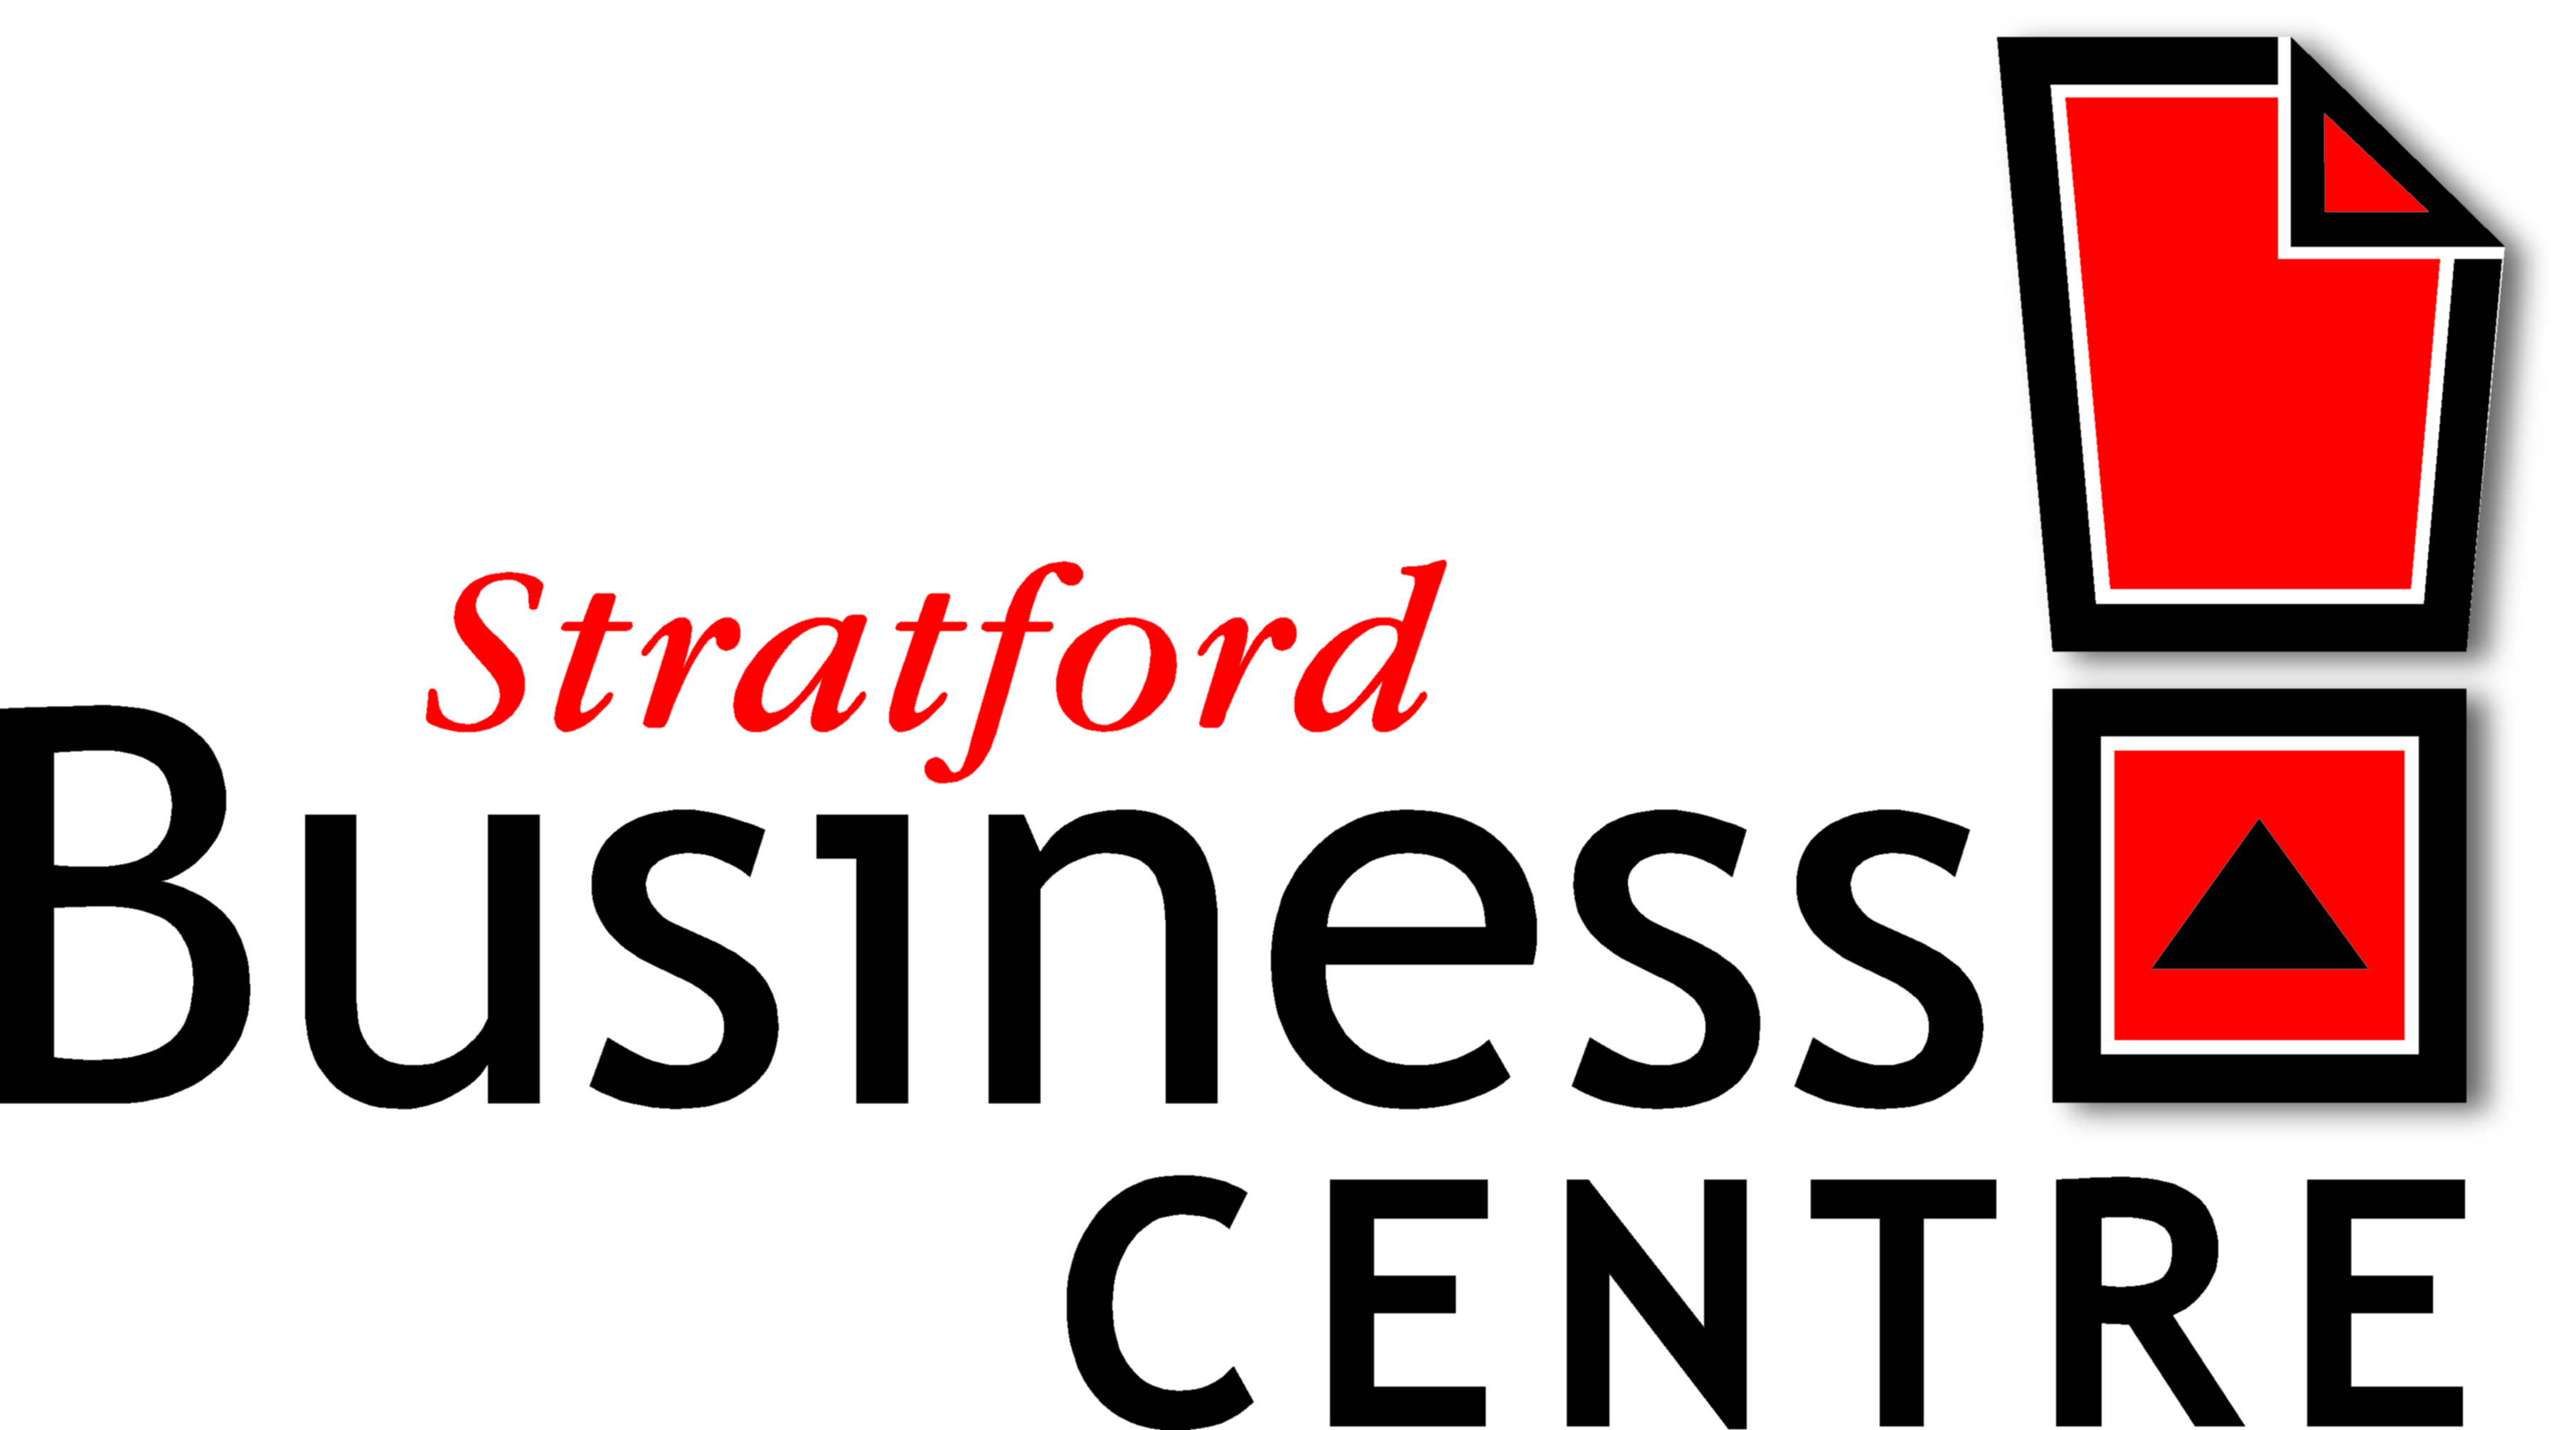 Stratford Business Centre